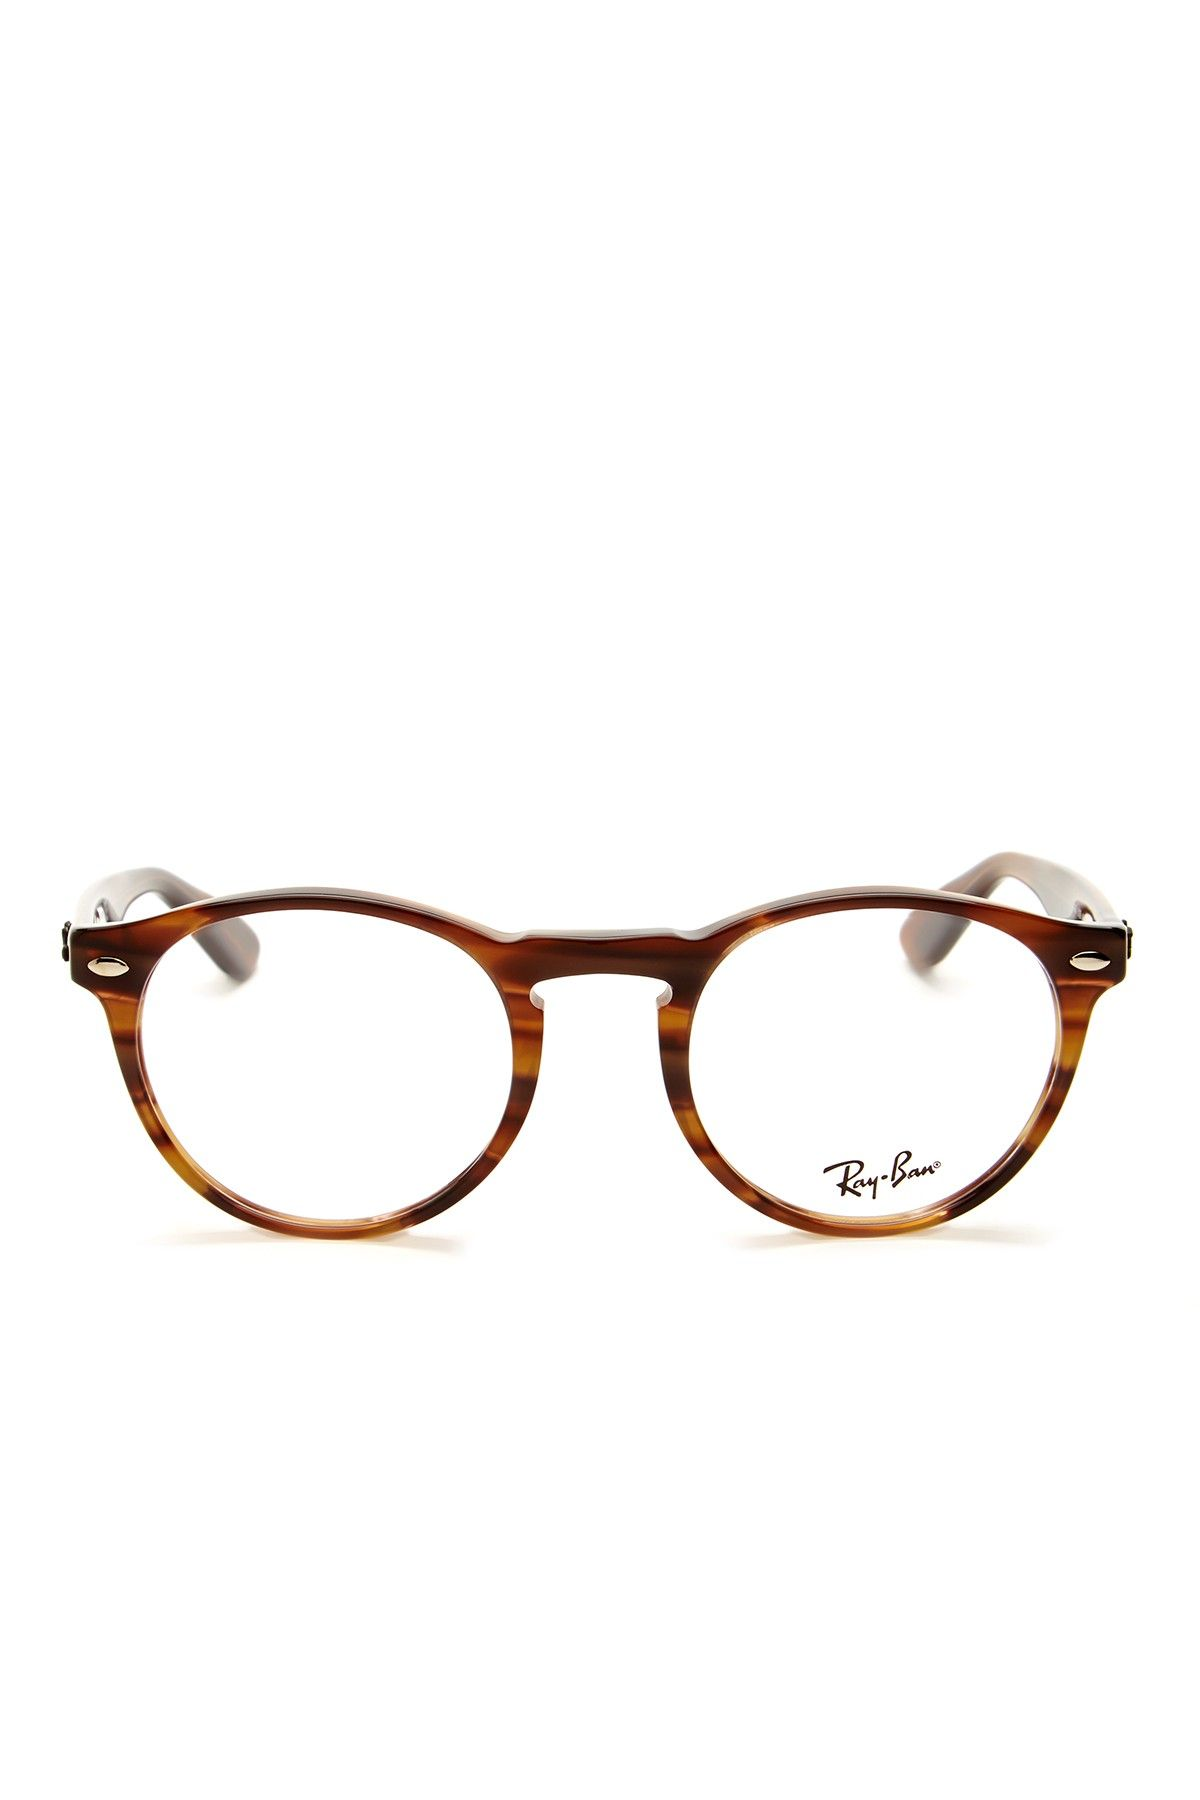 51d2fe395f Ray Ban Men's Striped Brown Acetate Eyeglasses | Eyewear | Gafas ...